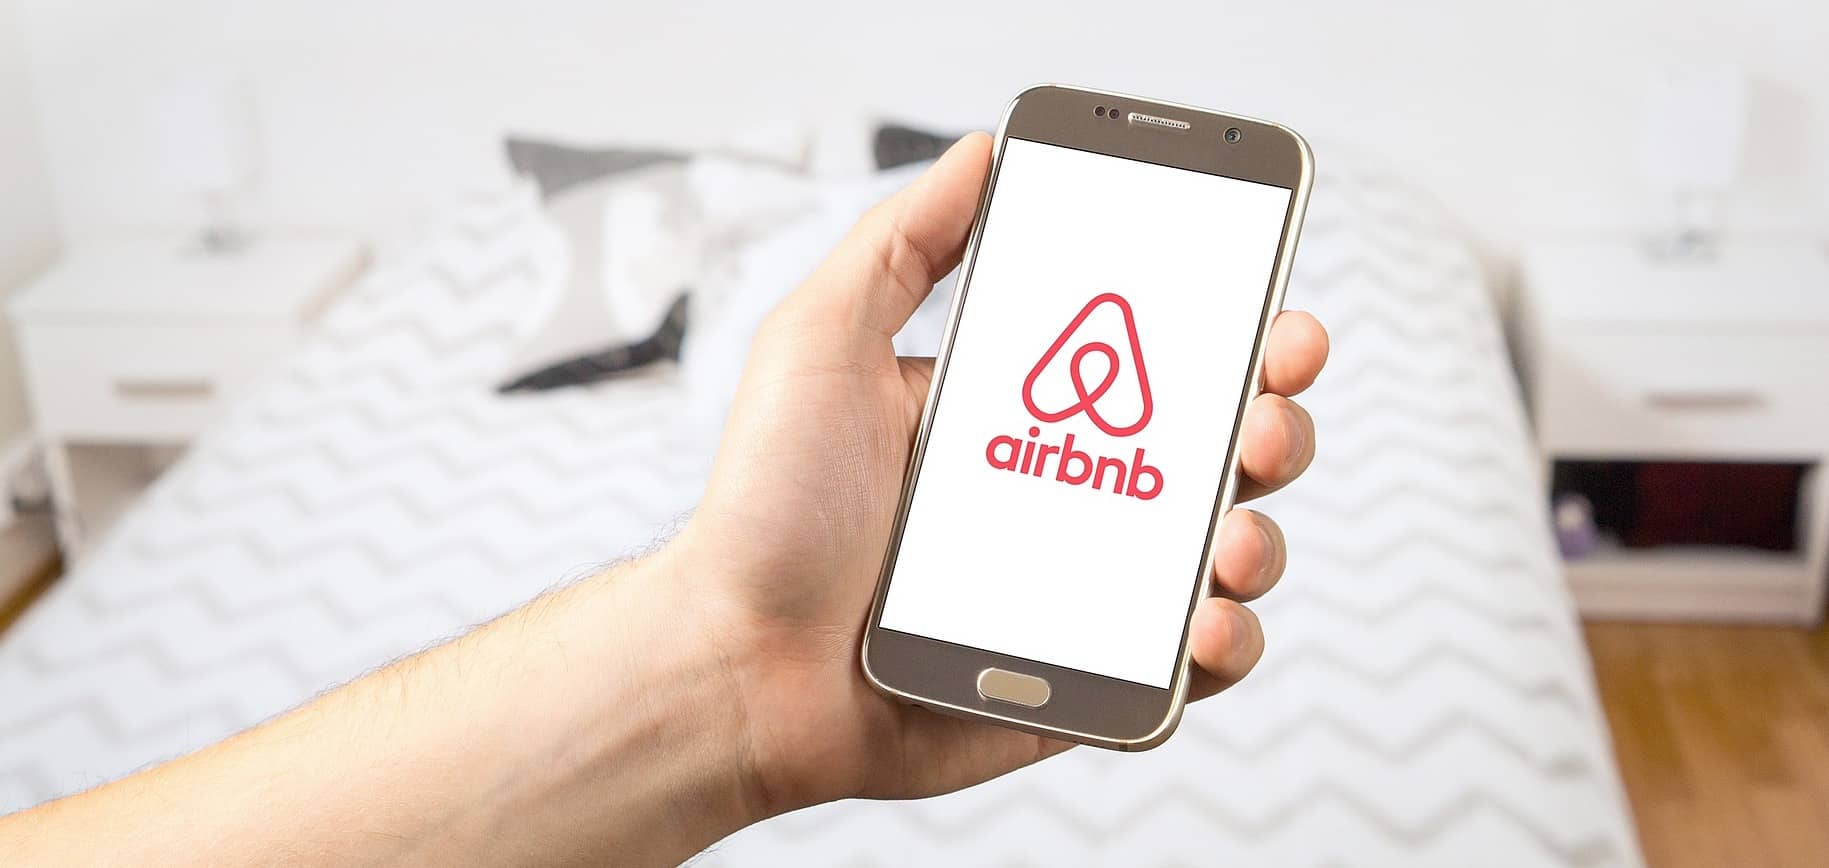 How to Get an Airbnb Coupn